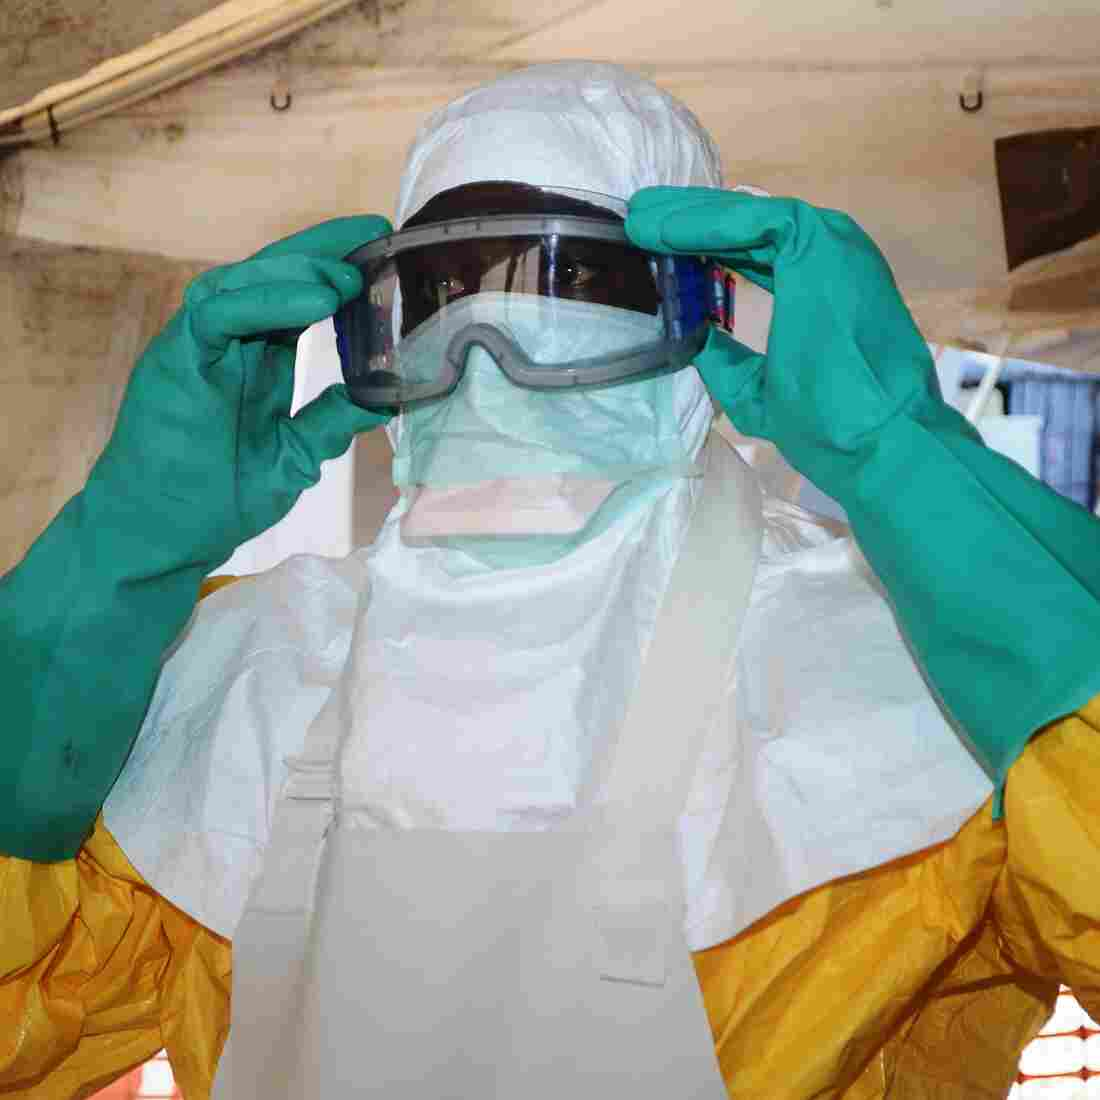 How U.S. Hospitals Keep Deadly Germs Like Ebola Virus Contained